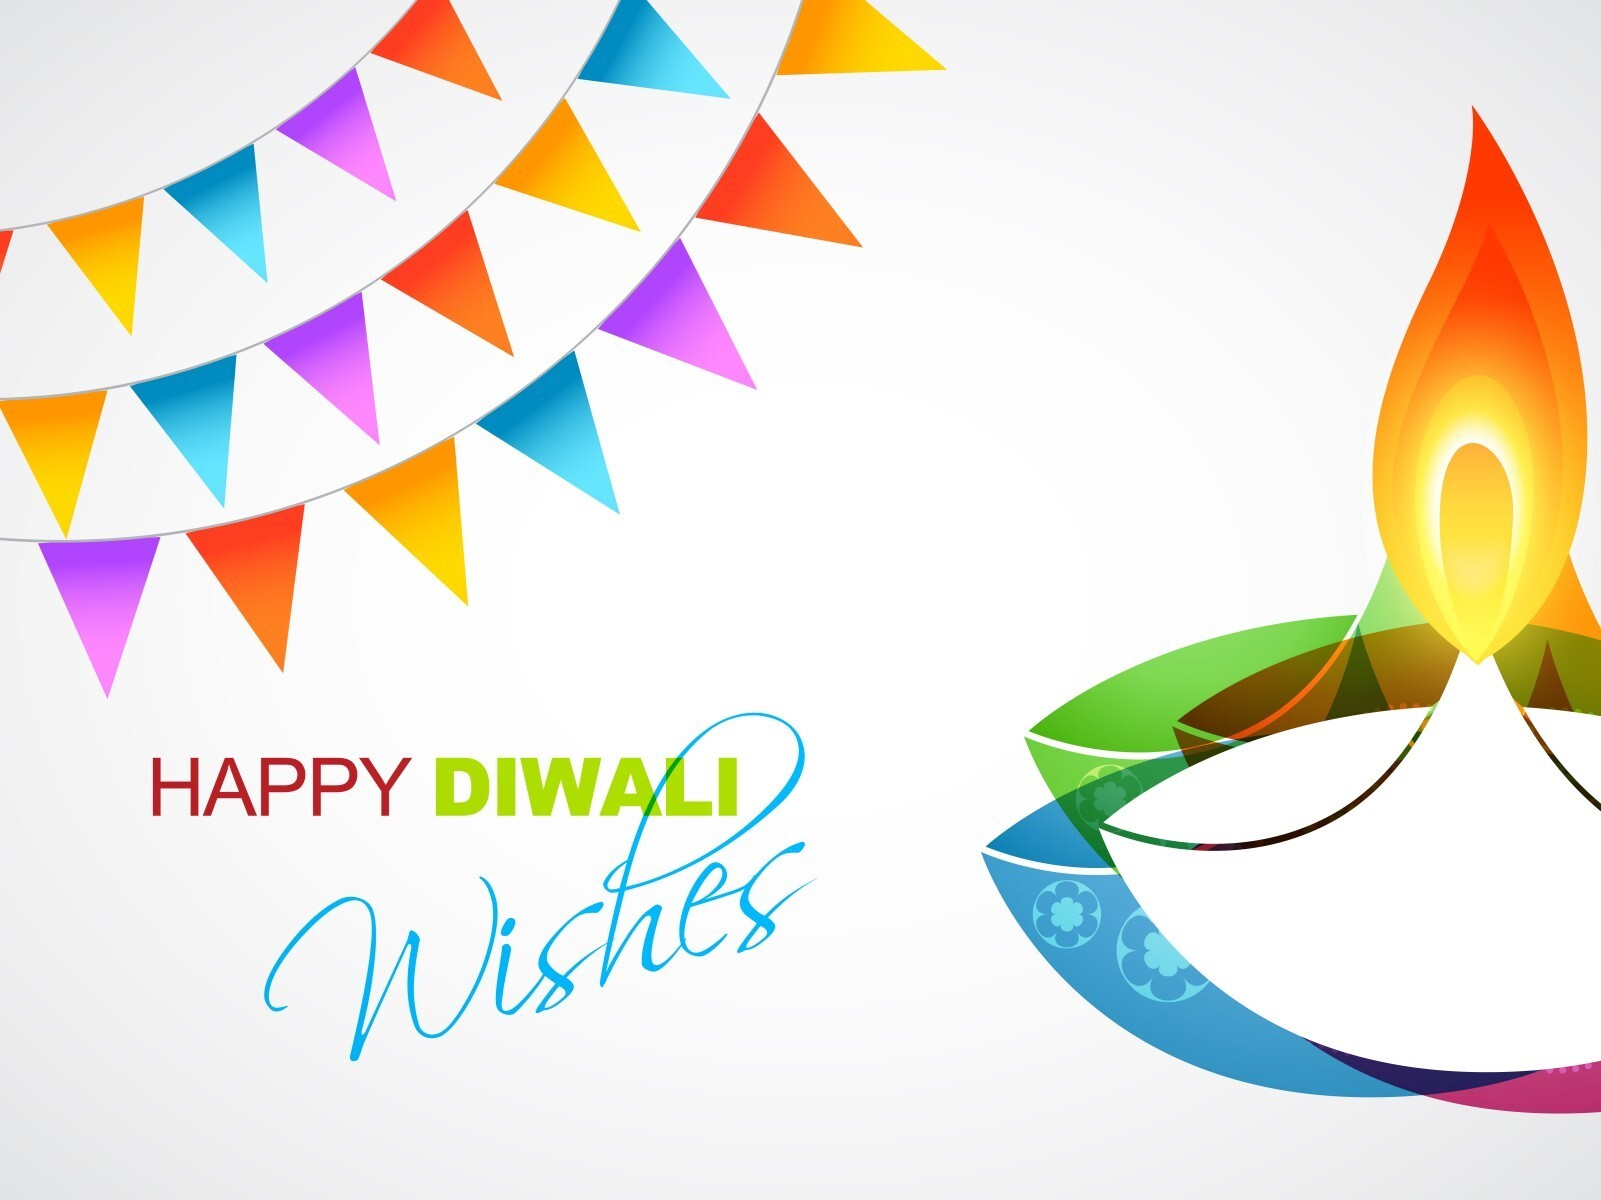 Happy Diwali Greetings Card Wishes Images Hd Wallpapers